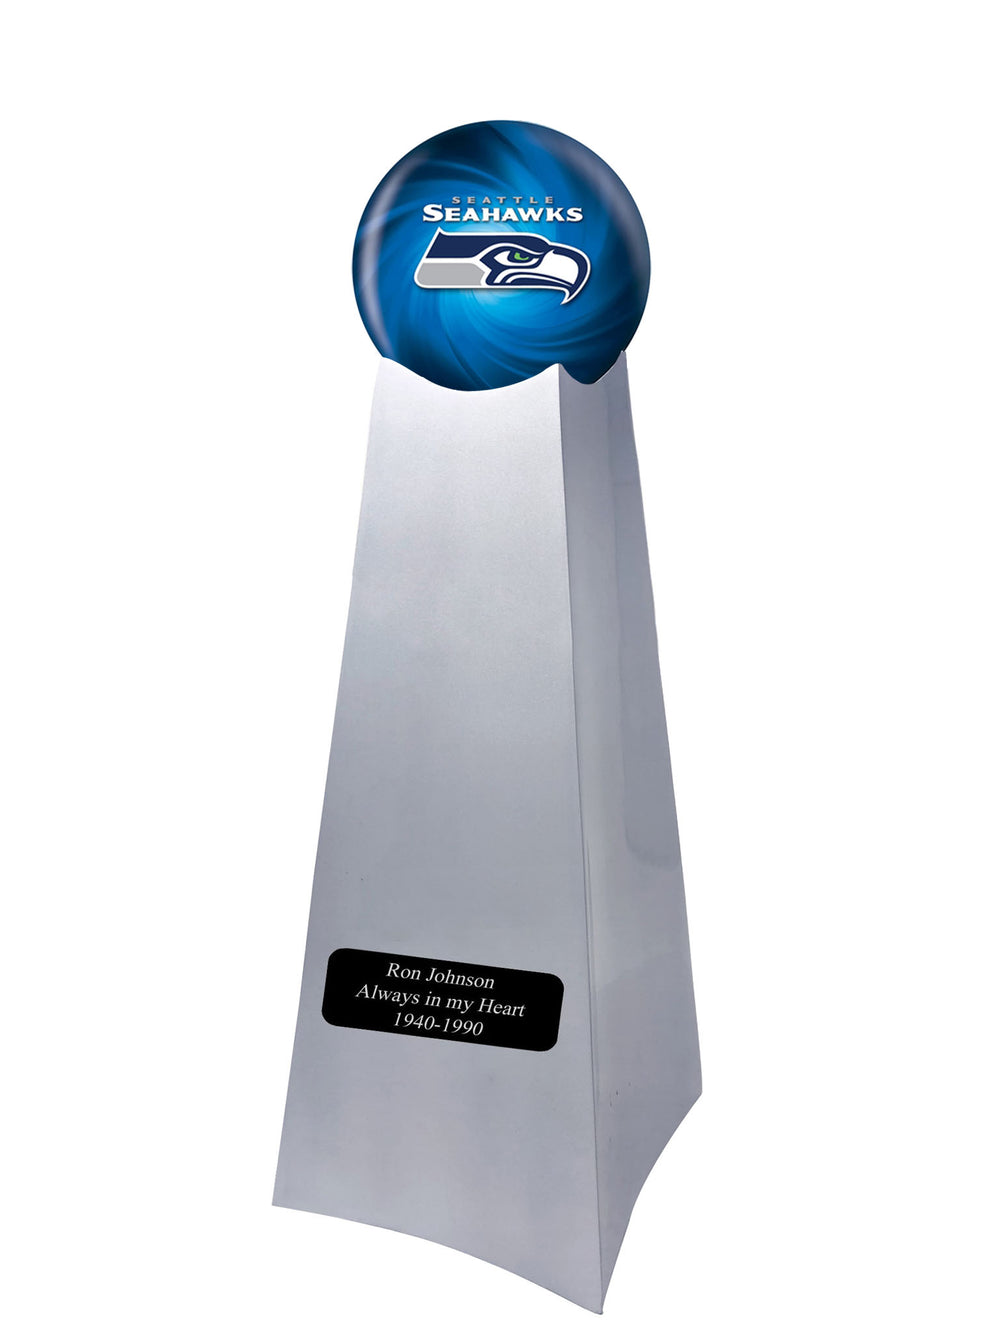 Championship Trophy Urn Base with Optional Seattle Seahawks Team Sphere